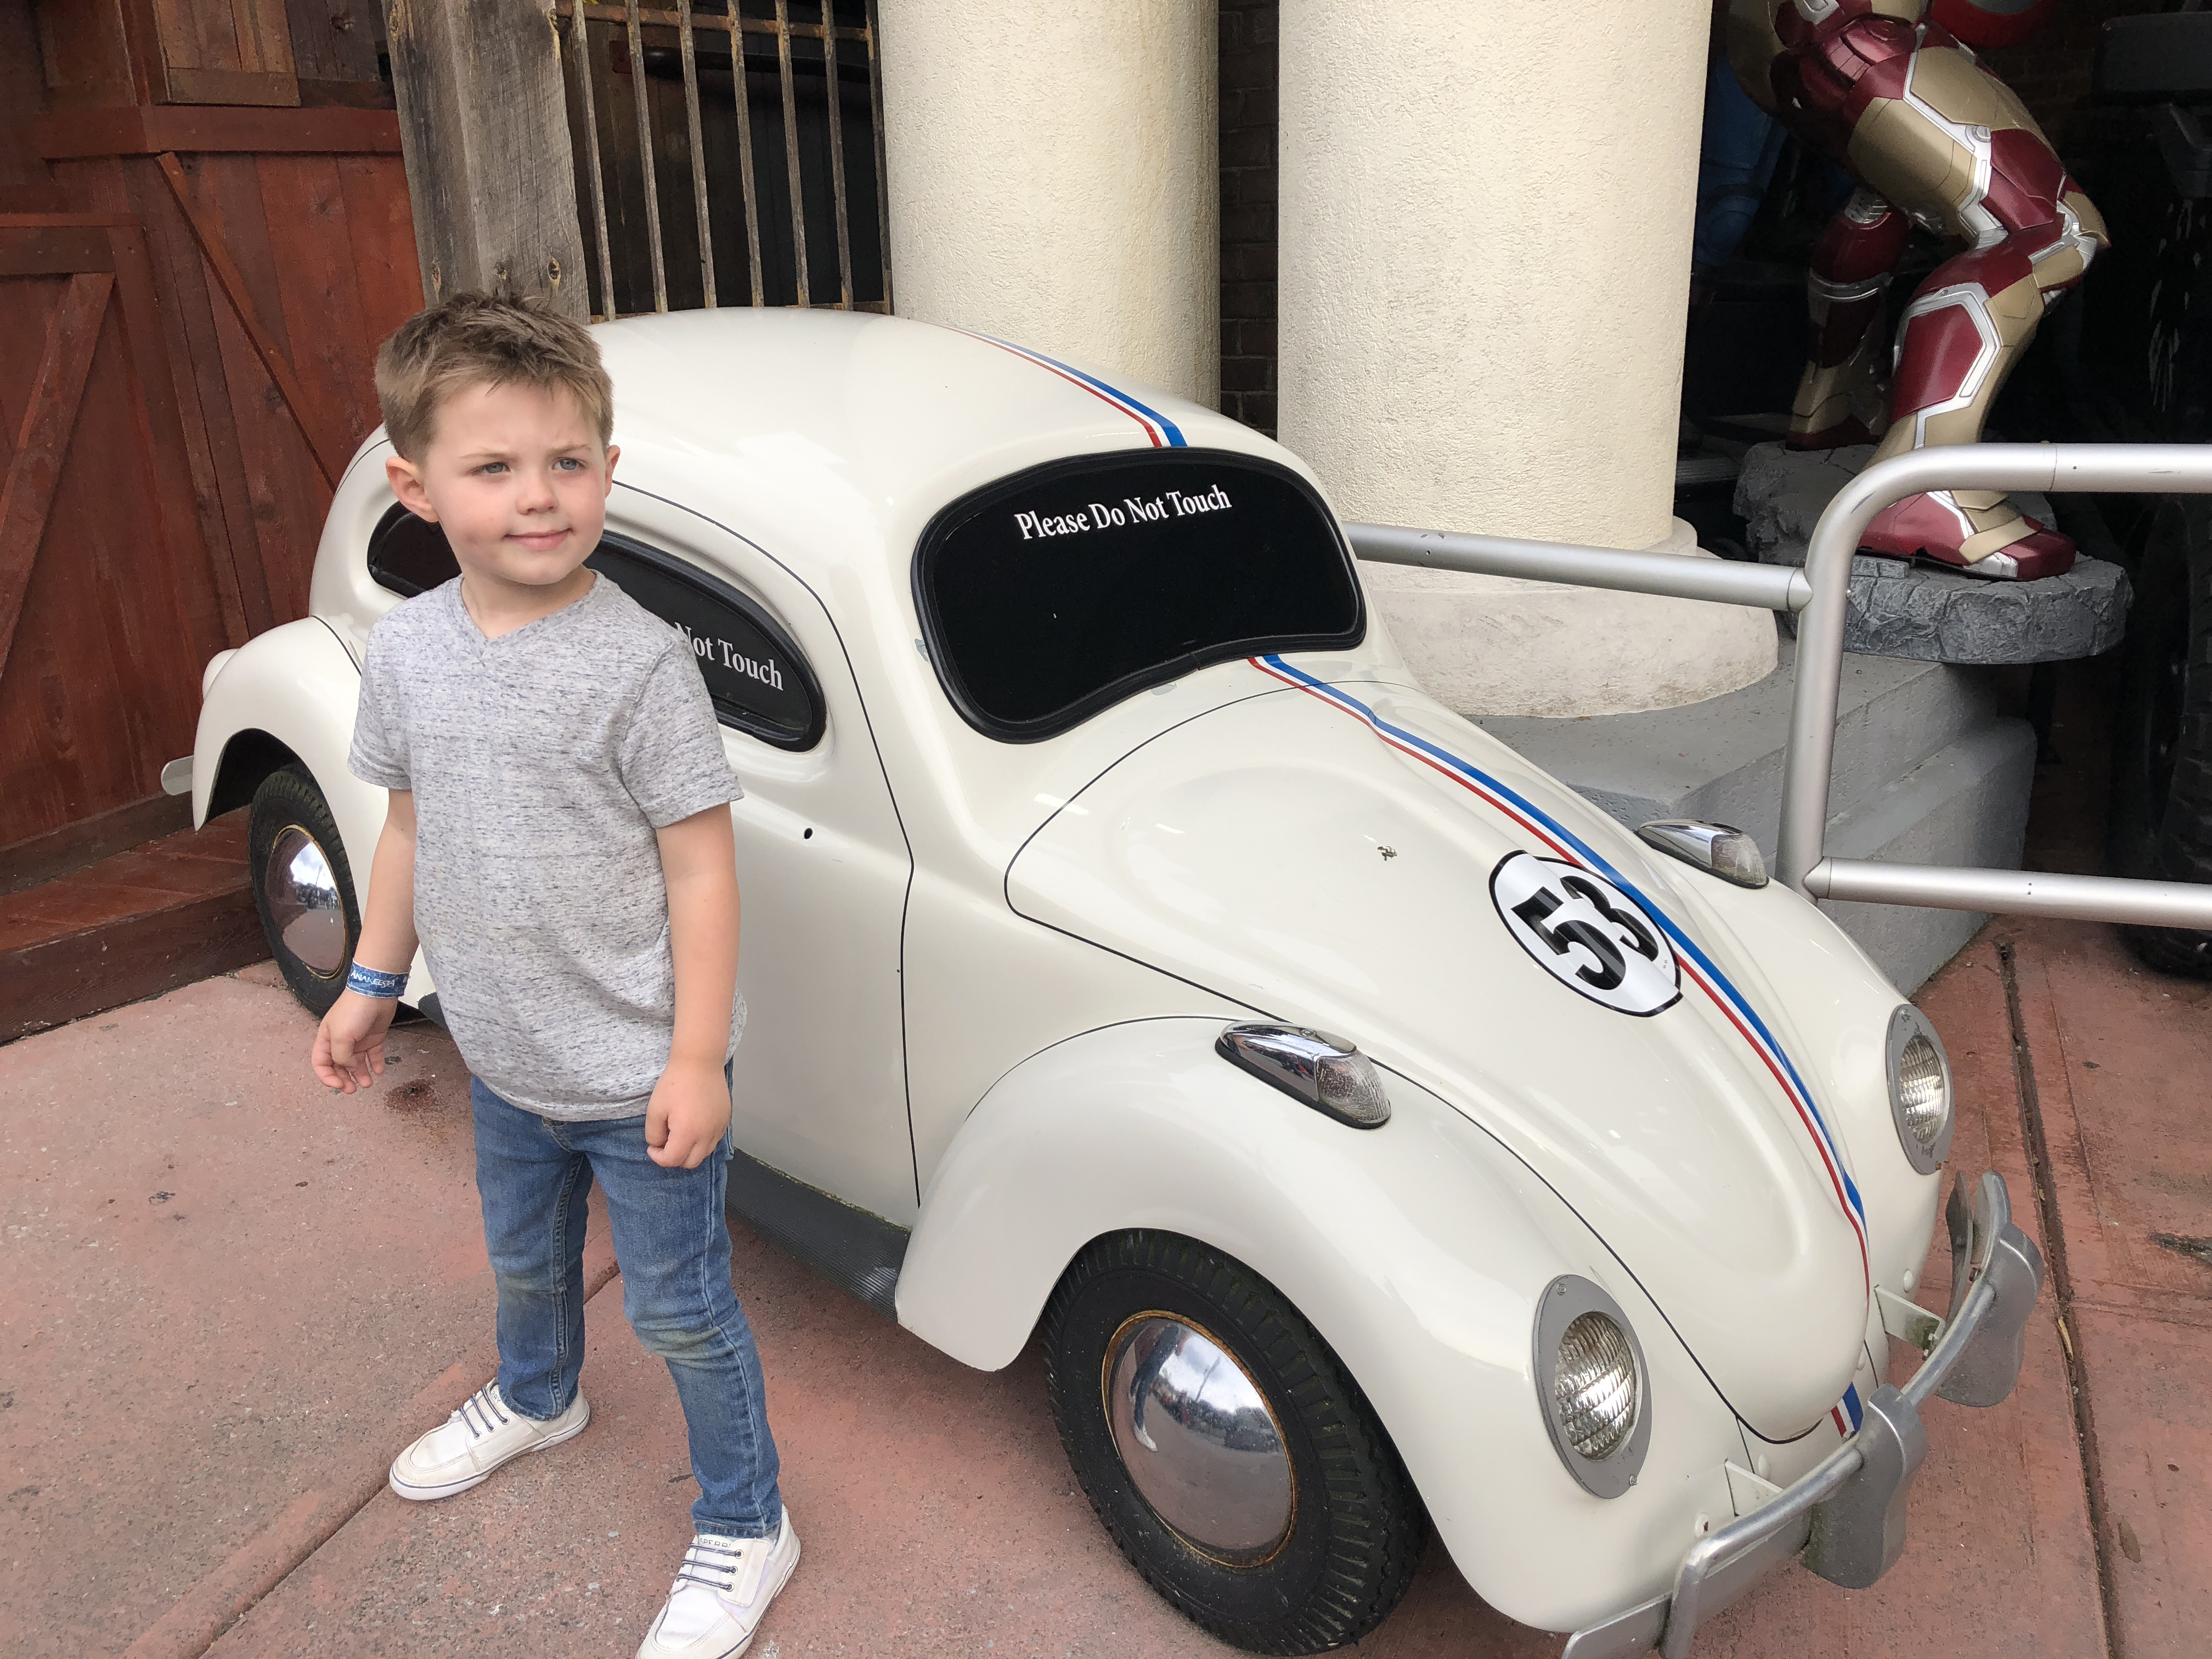 Gatlinburg TN - Visit Tennessee - The Love Bug Car - Museum of Movie Cars - Fun Things to Do in Gatlinburg, TN With Kids - Gatlinburg attractions and family friendly places via Misty Nelson travel blogger, family travel blog @frostedevents